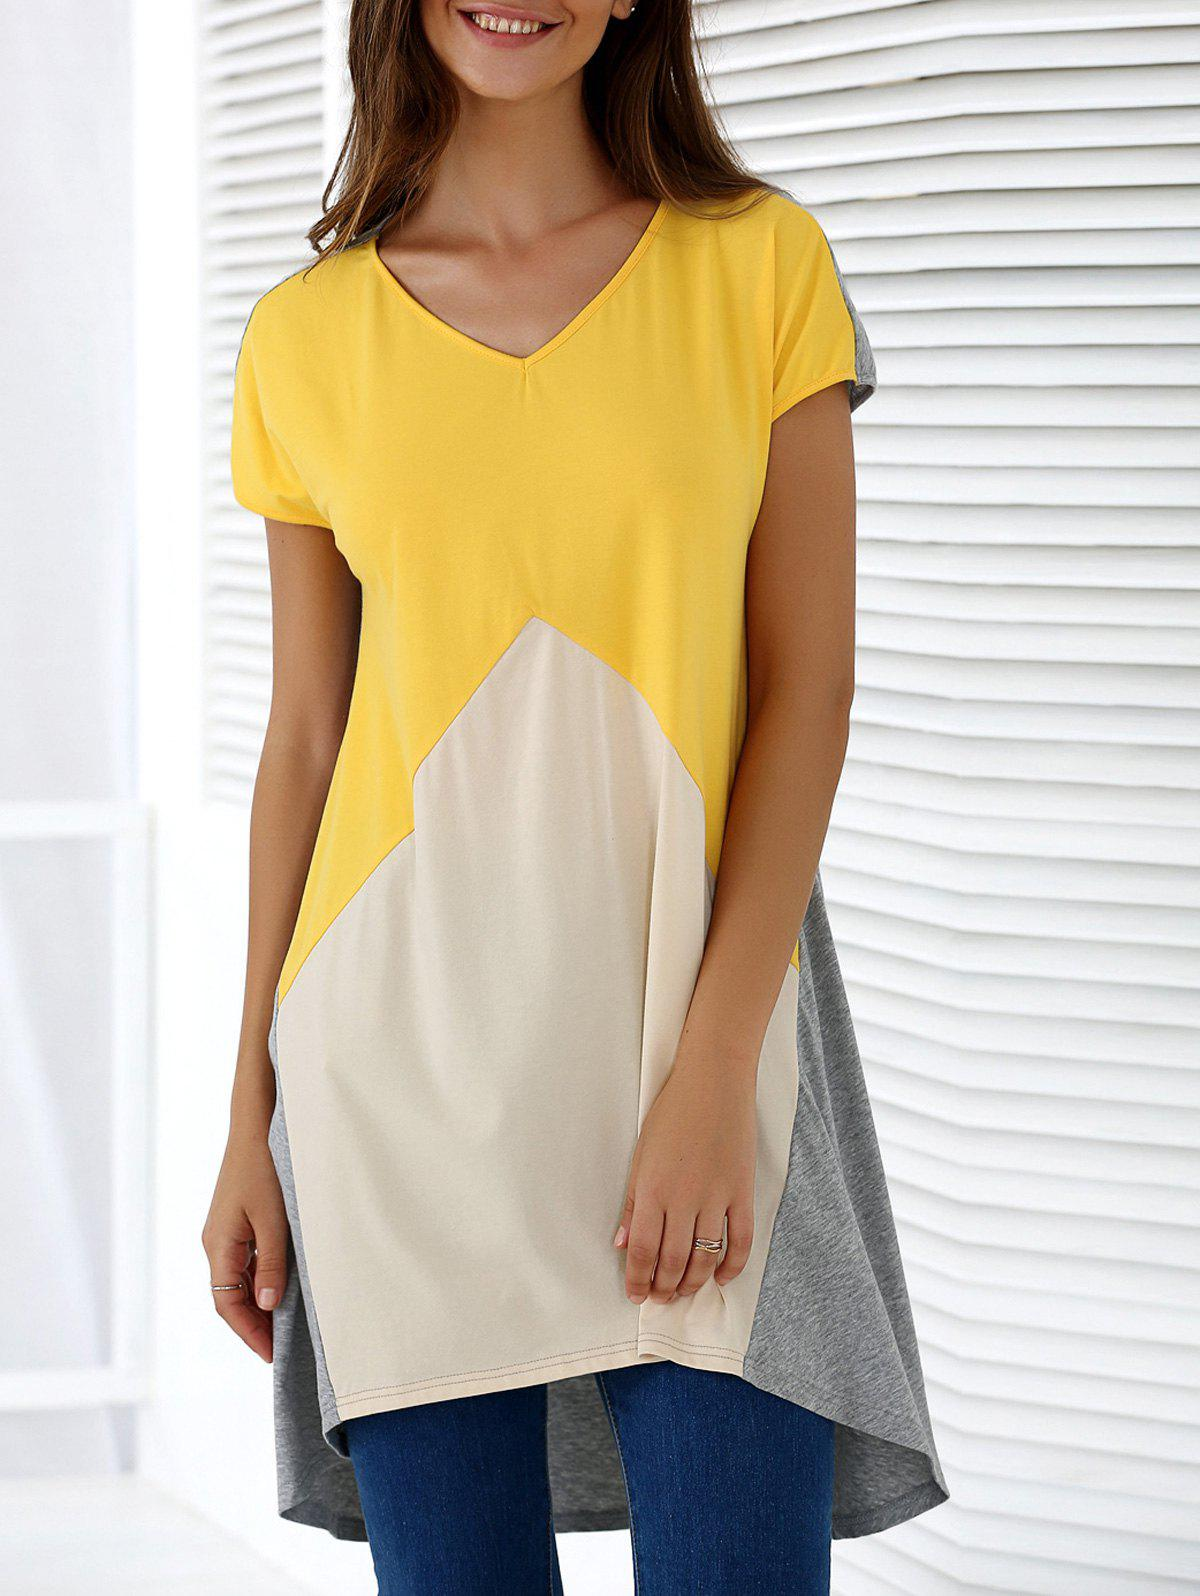 Fashionable Women's V-Neck Short Sleeve Contrast Color Loose-Fitting Blouse - COLORMIX XL